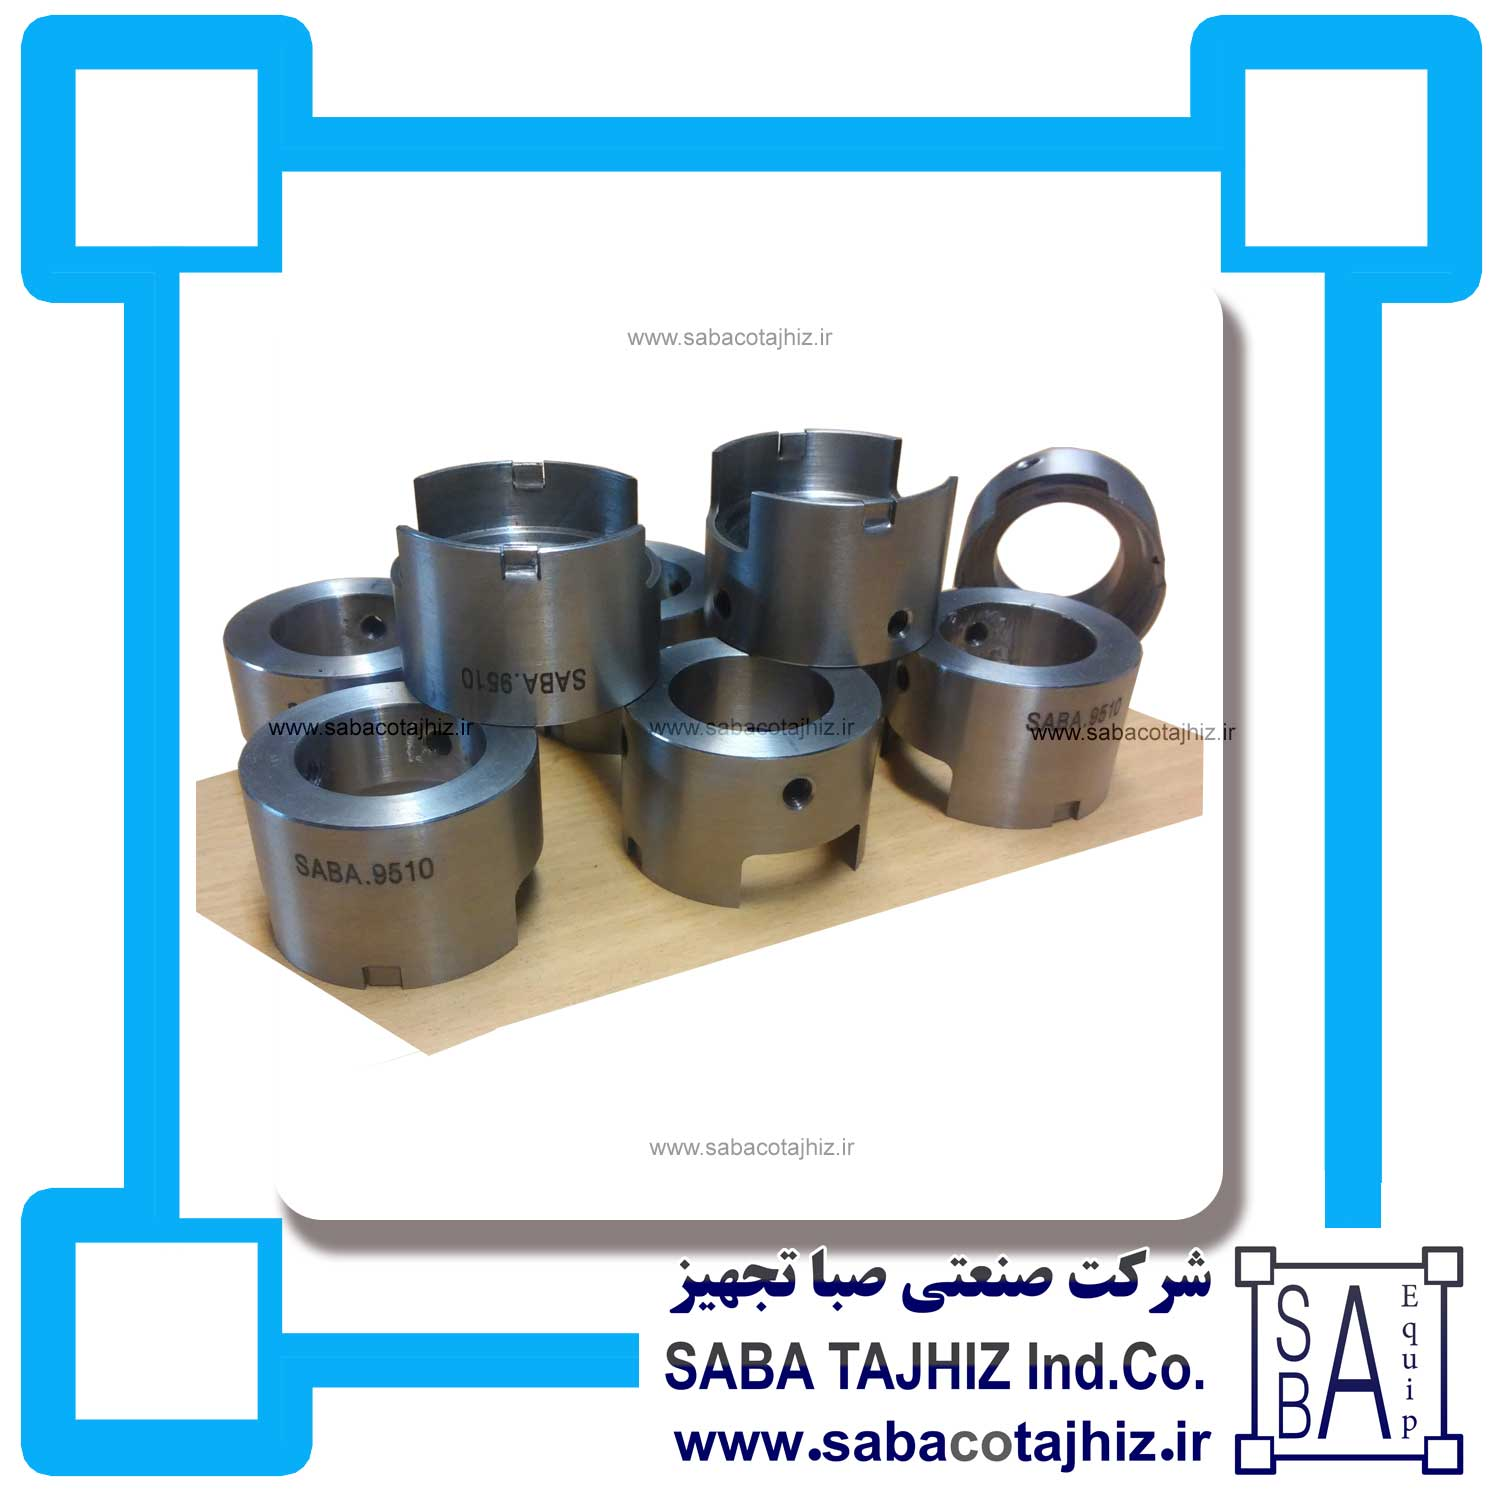 Insulation Plant Stainless Steel Mechanical Seal